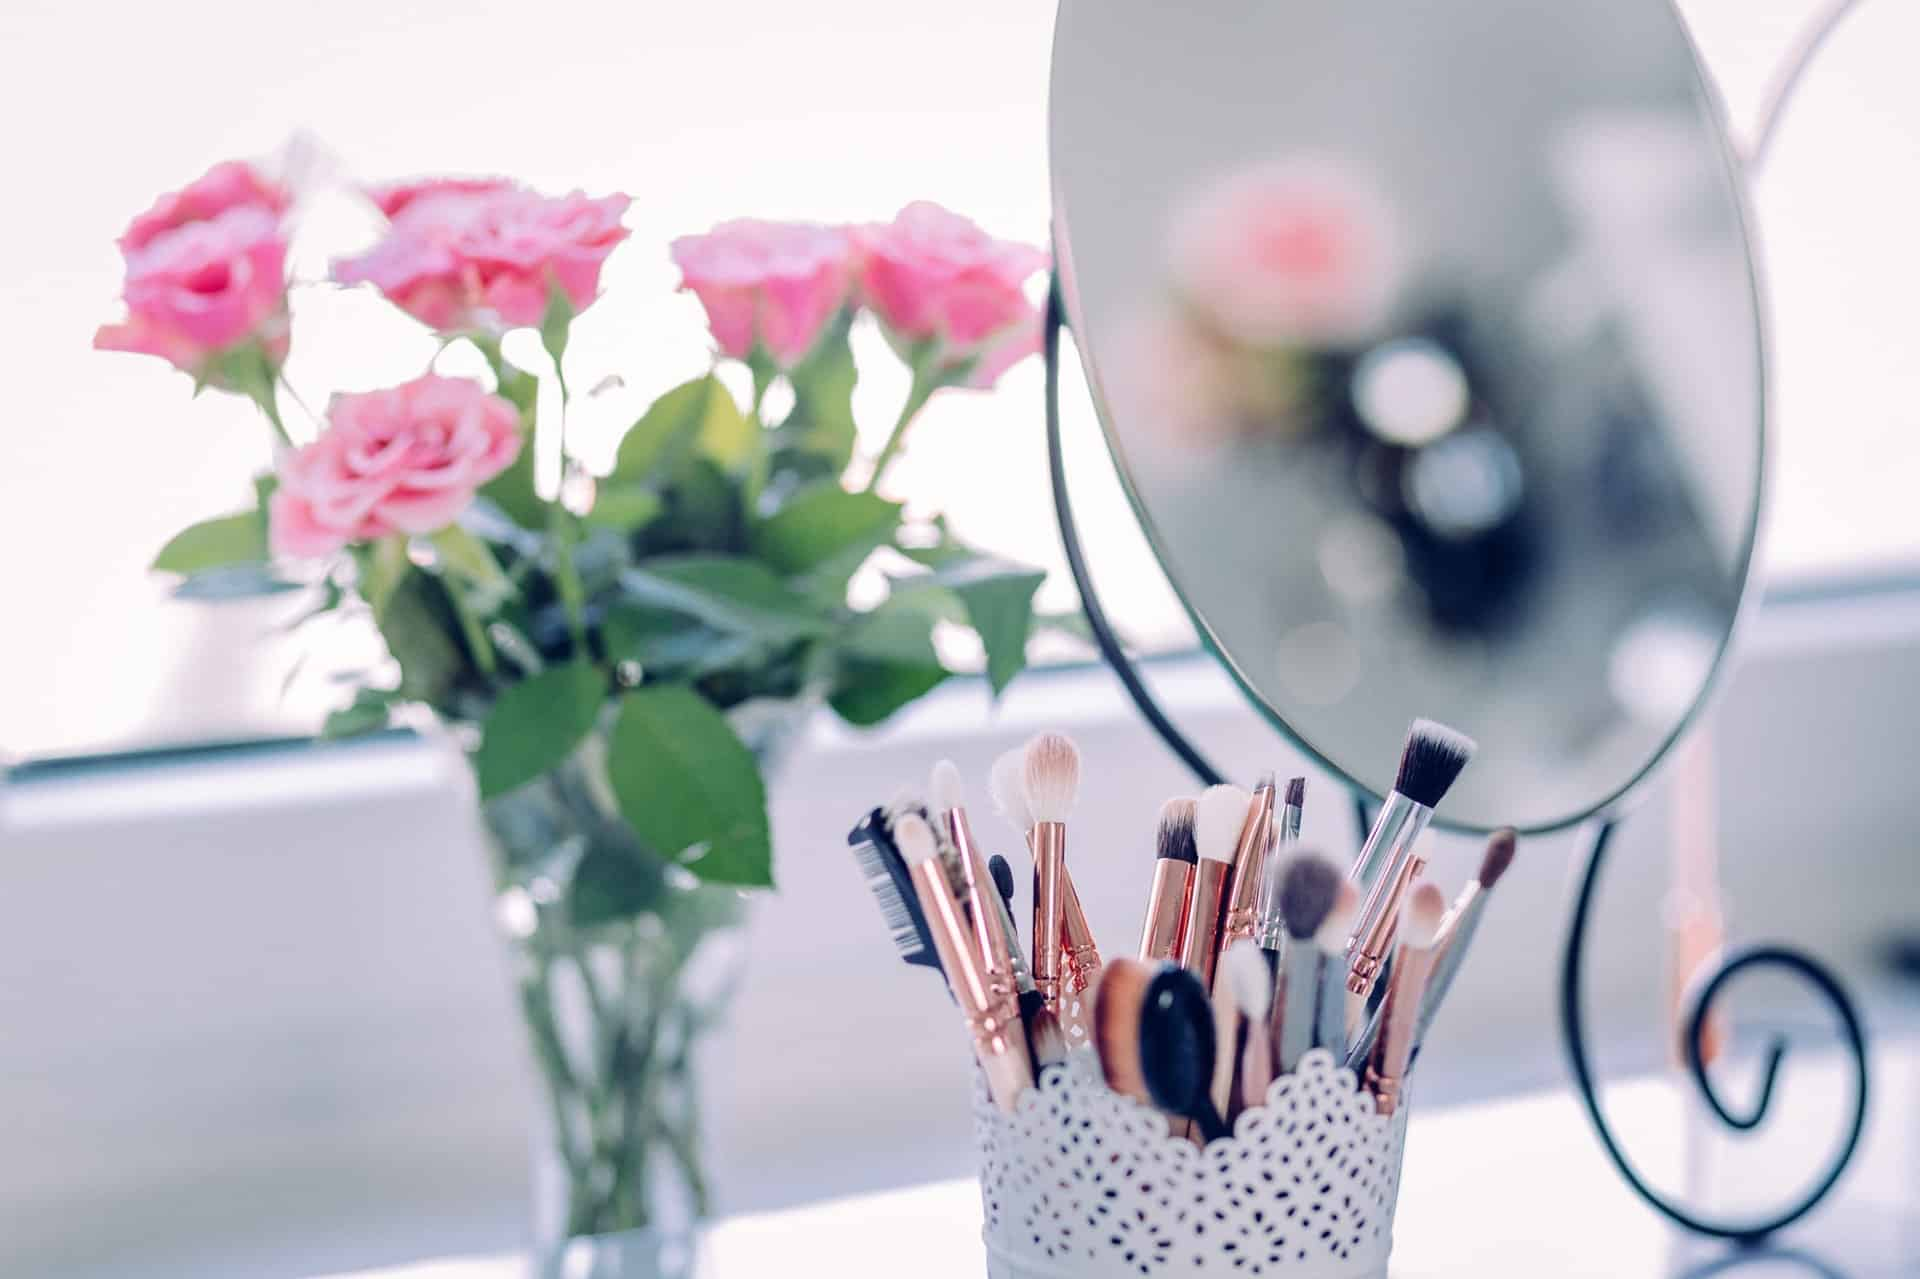 vanity with makeup brushes, mirror, and pink roses in a vase